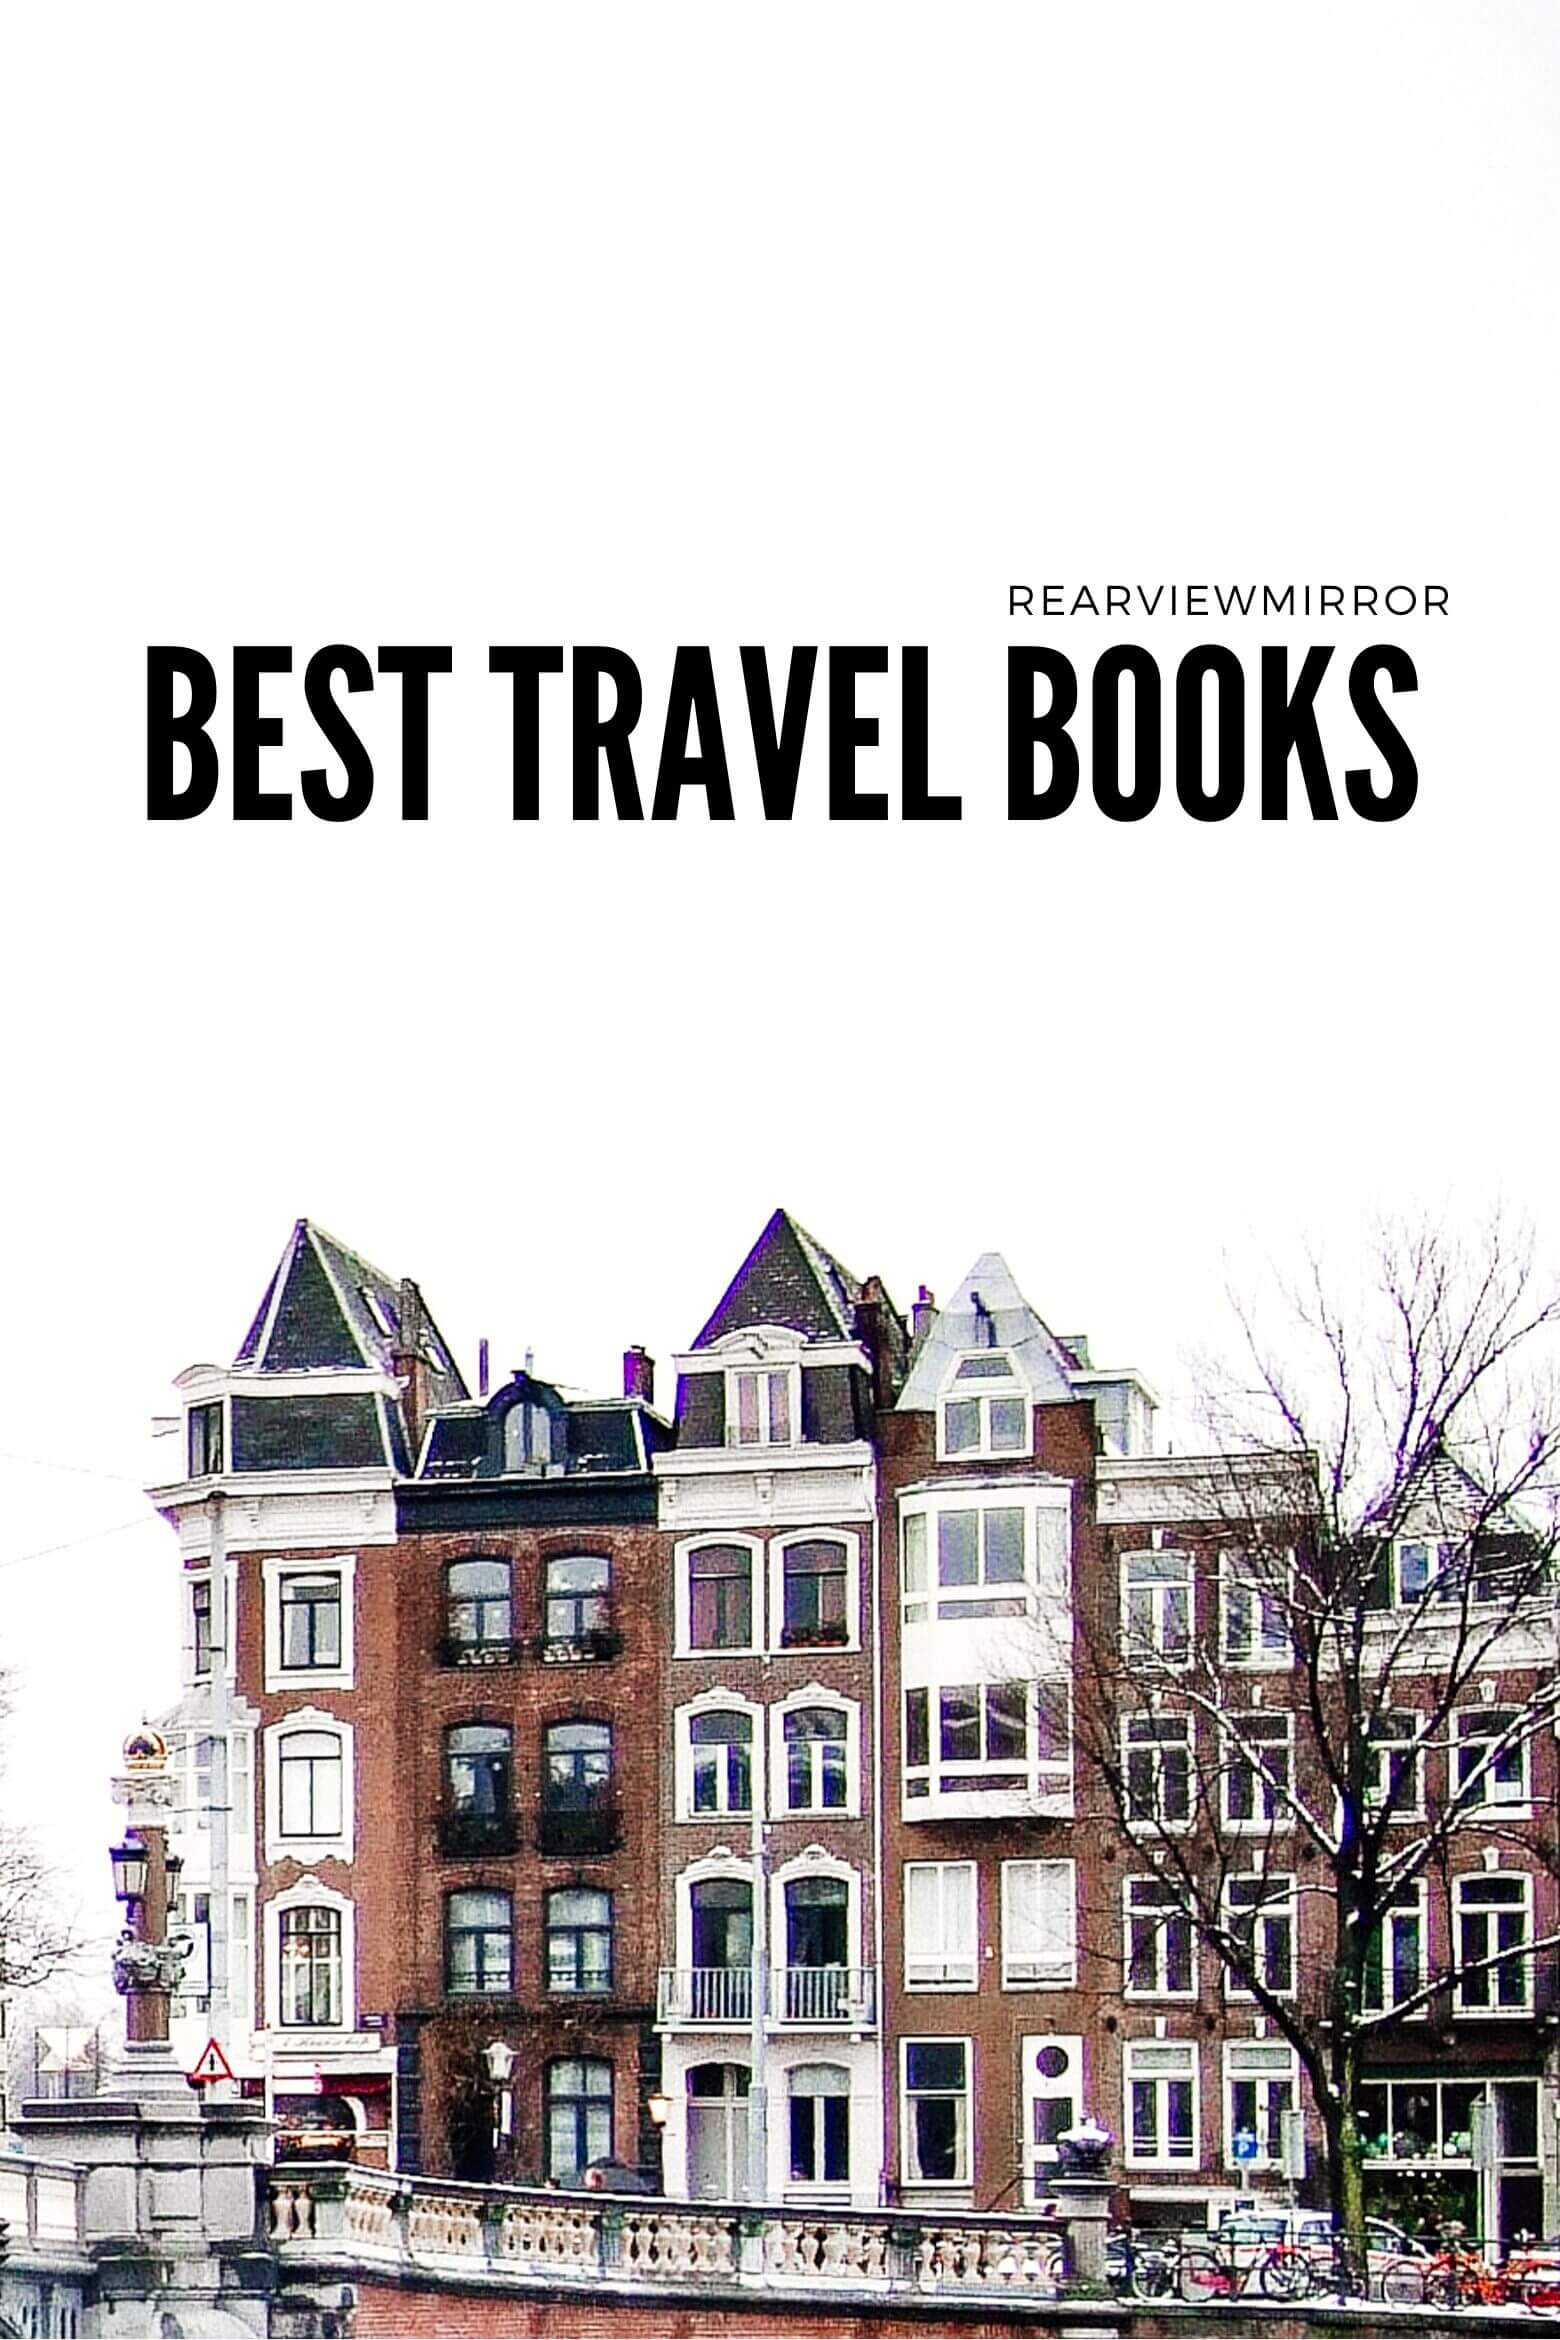 Best Travel Books of 2019